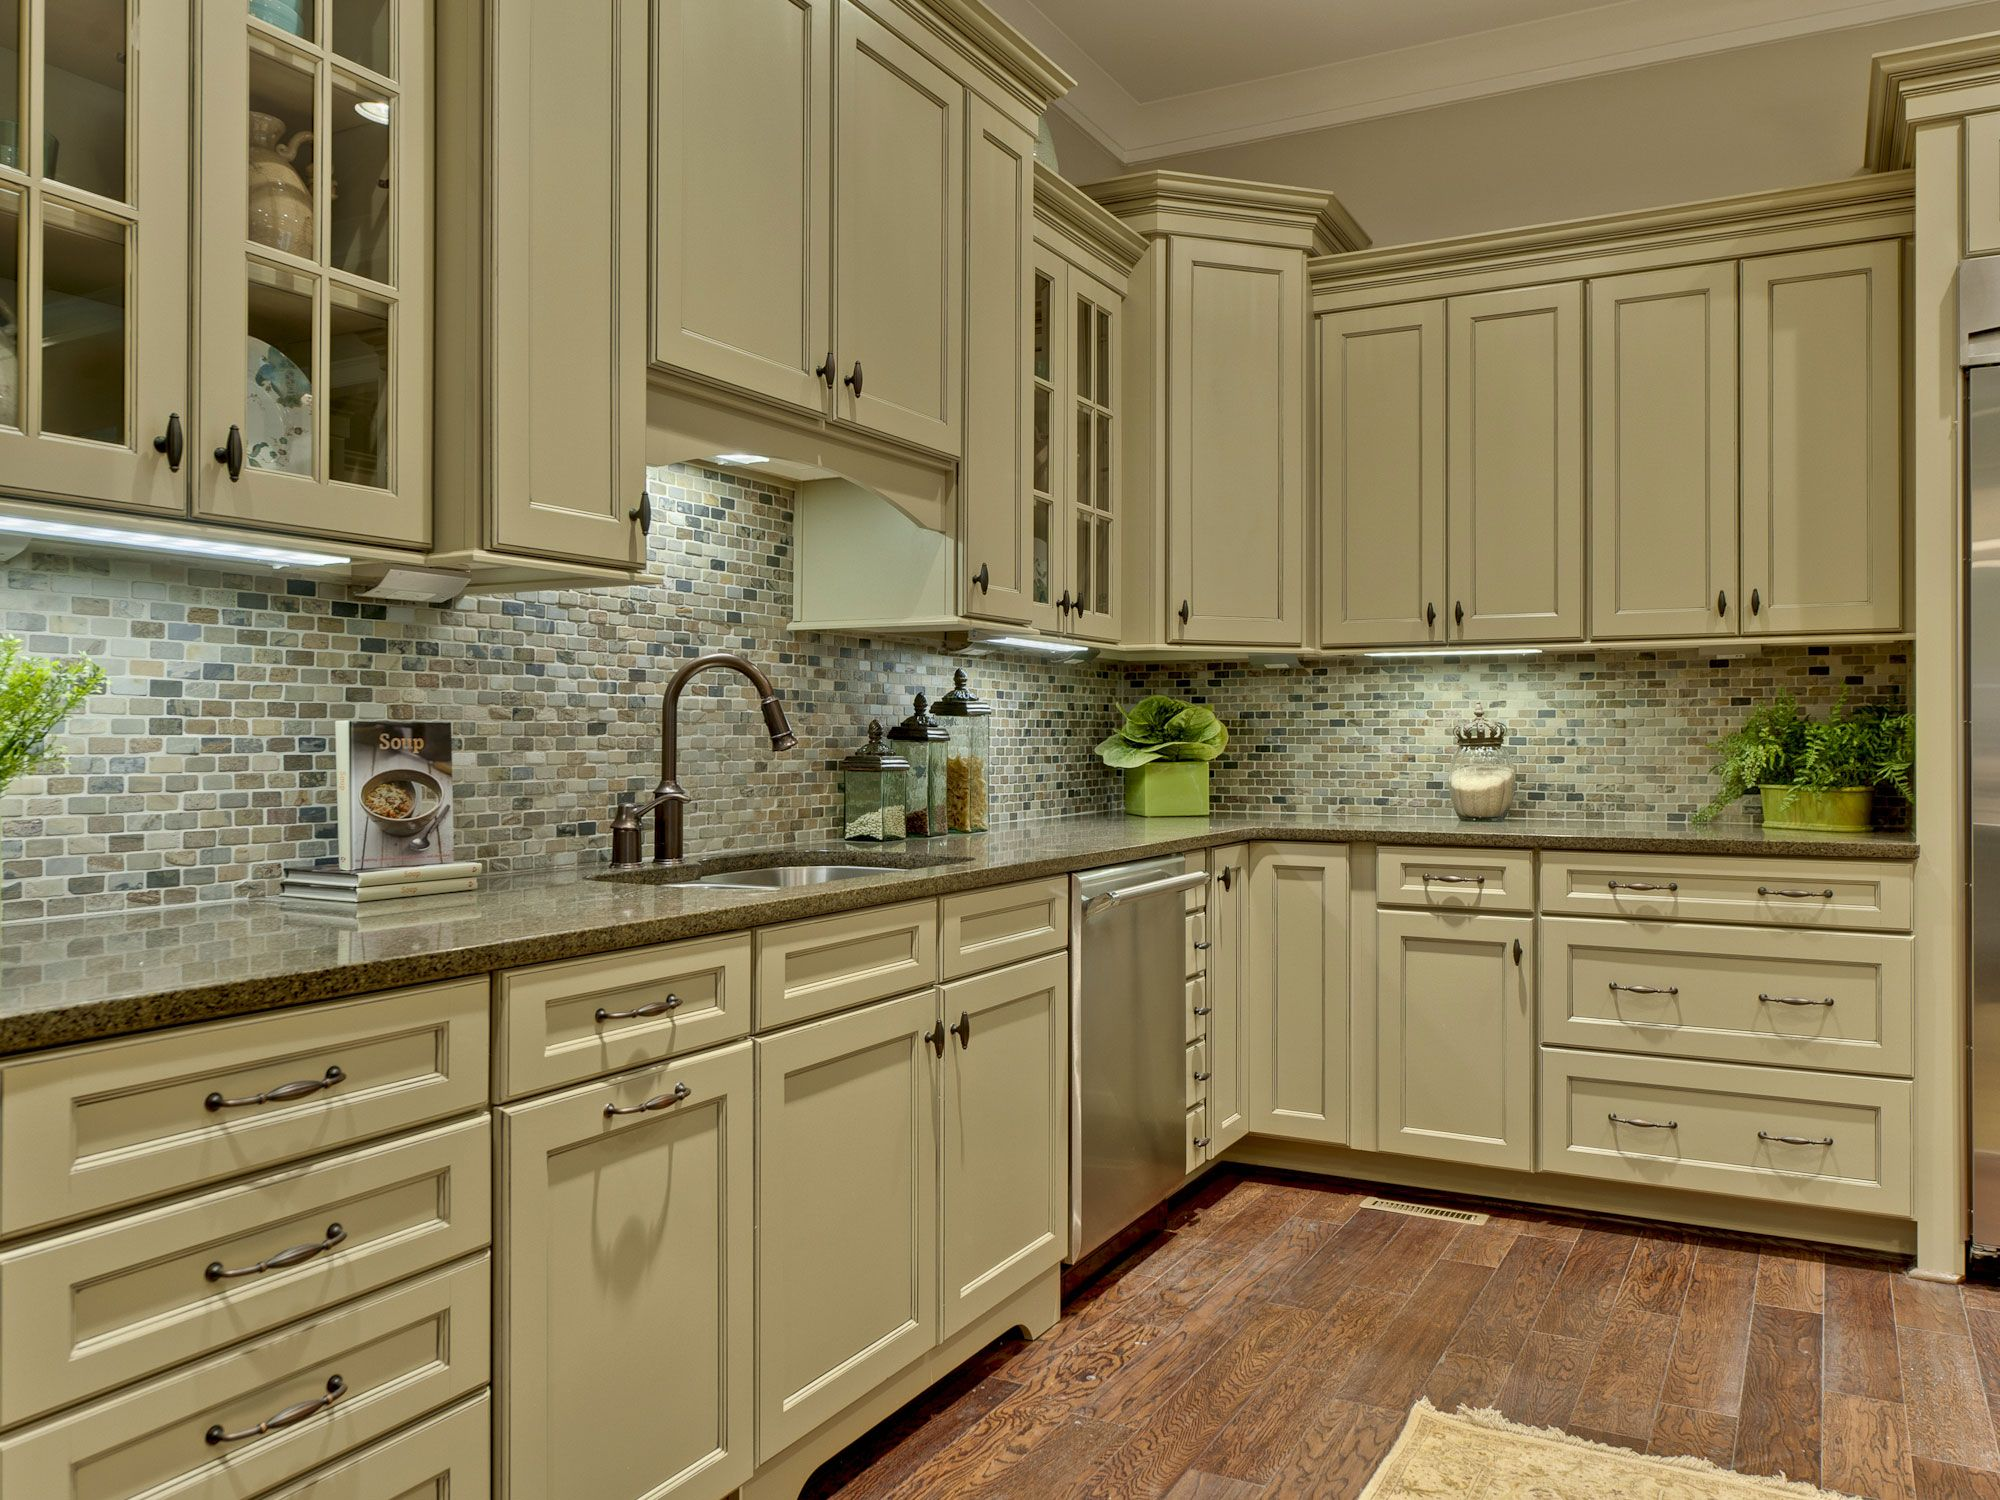 Amazing refinished green kitchen cabinets to white painted for White kitchen cabinets what color backsplash